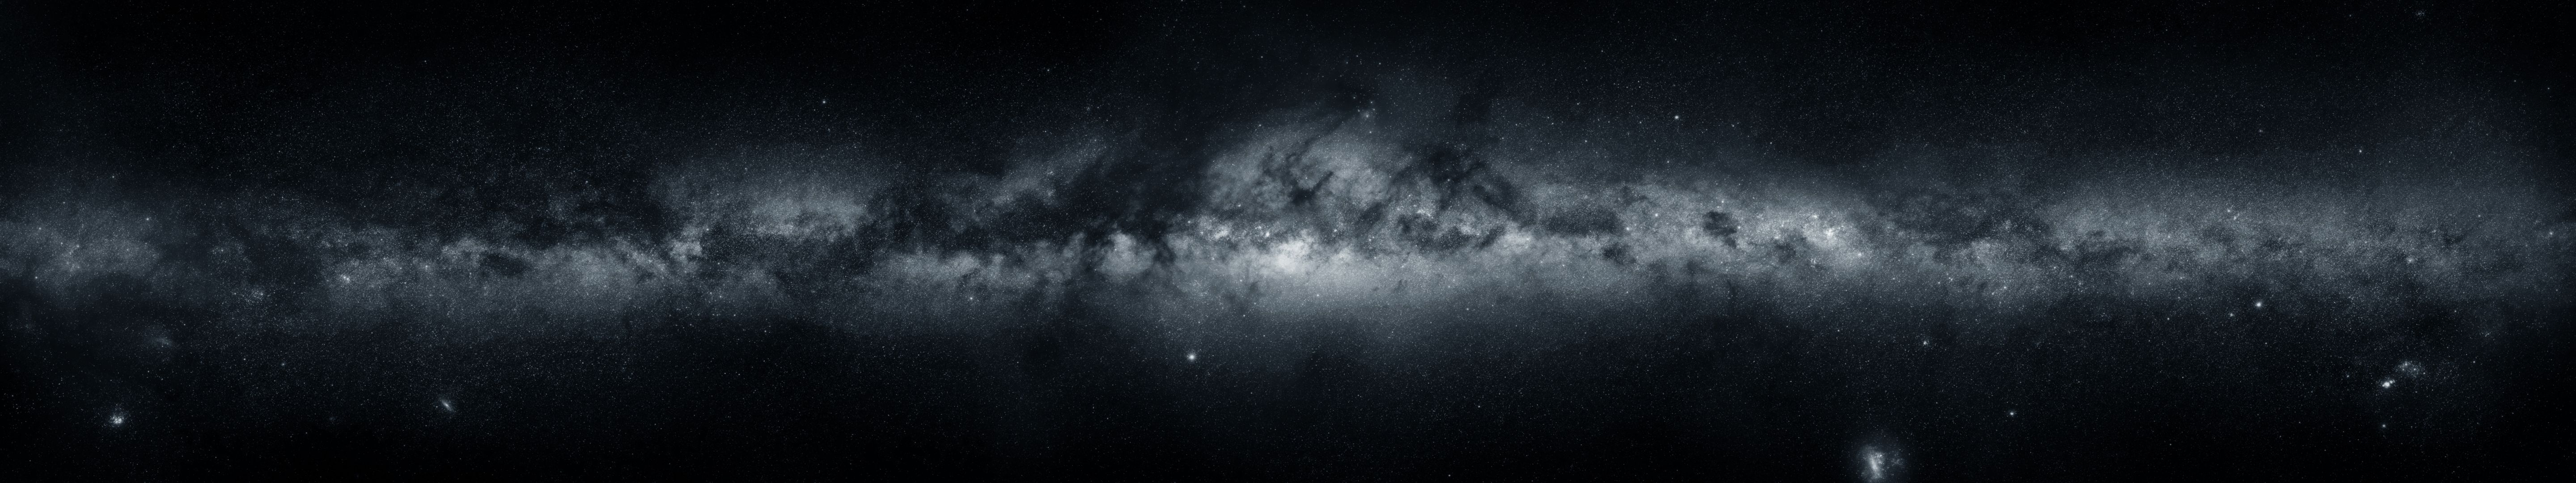 5760x1080 5760 x 1080 Space Wallpapers - Album on Imgur